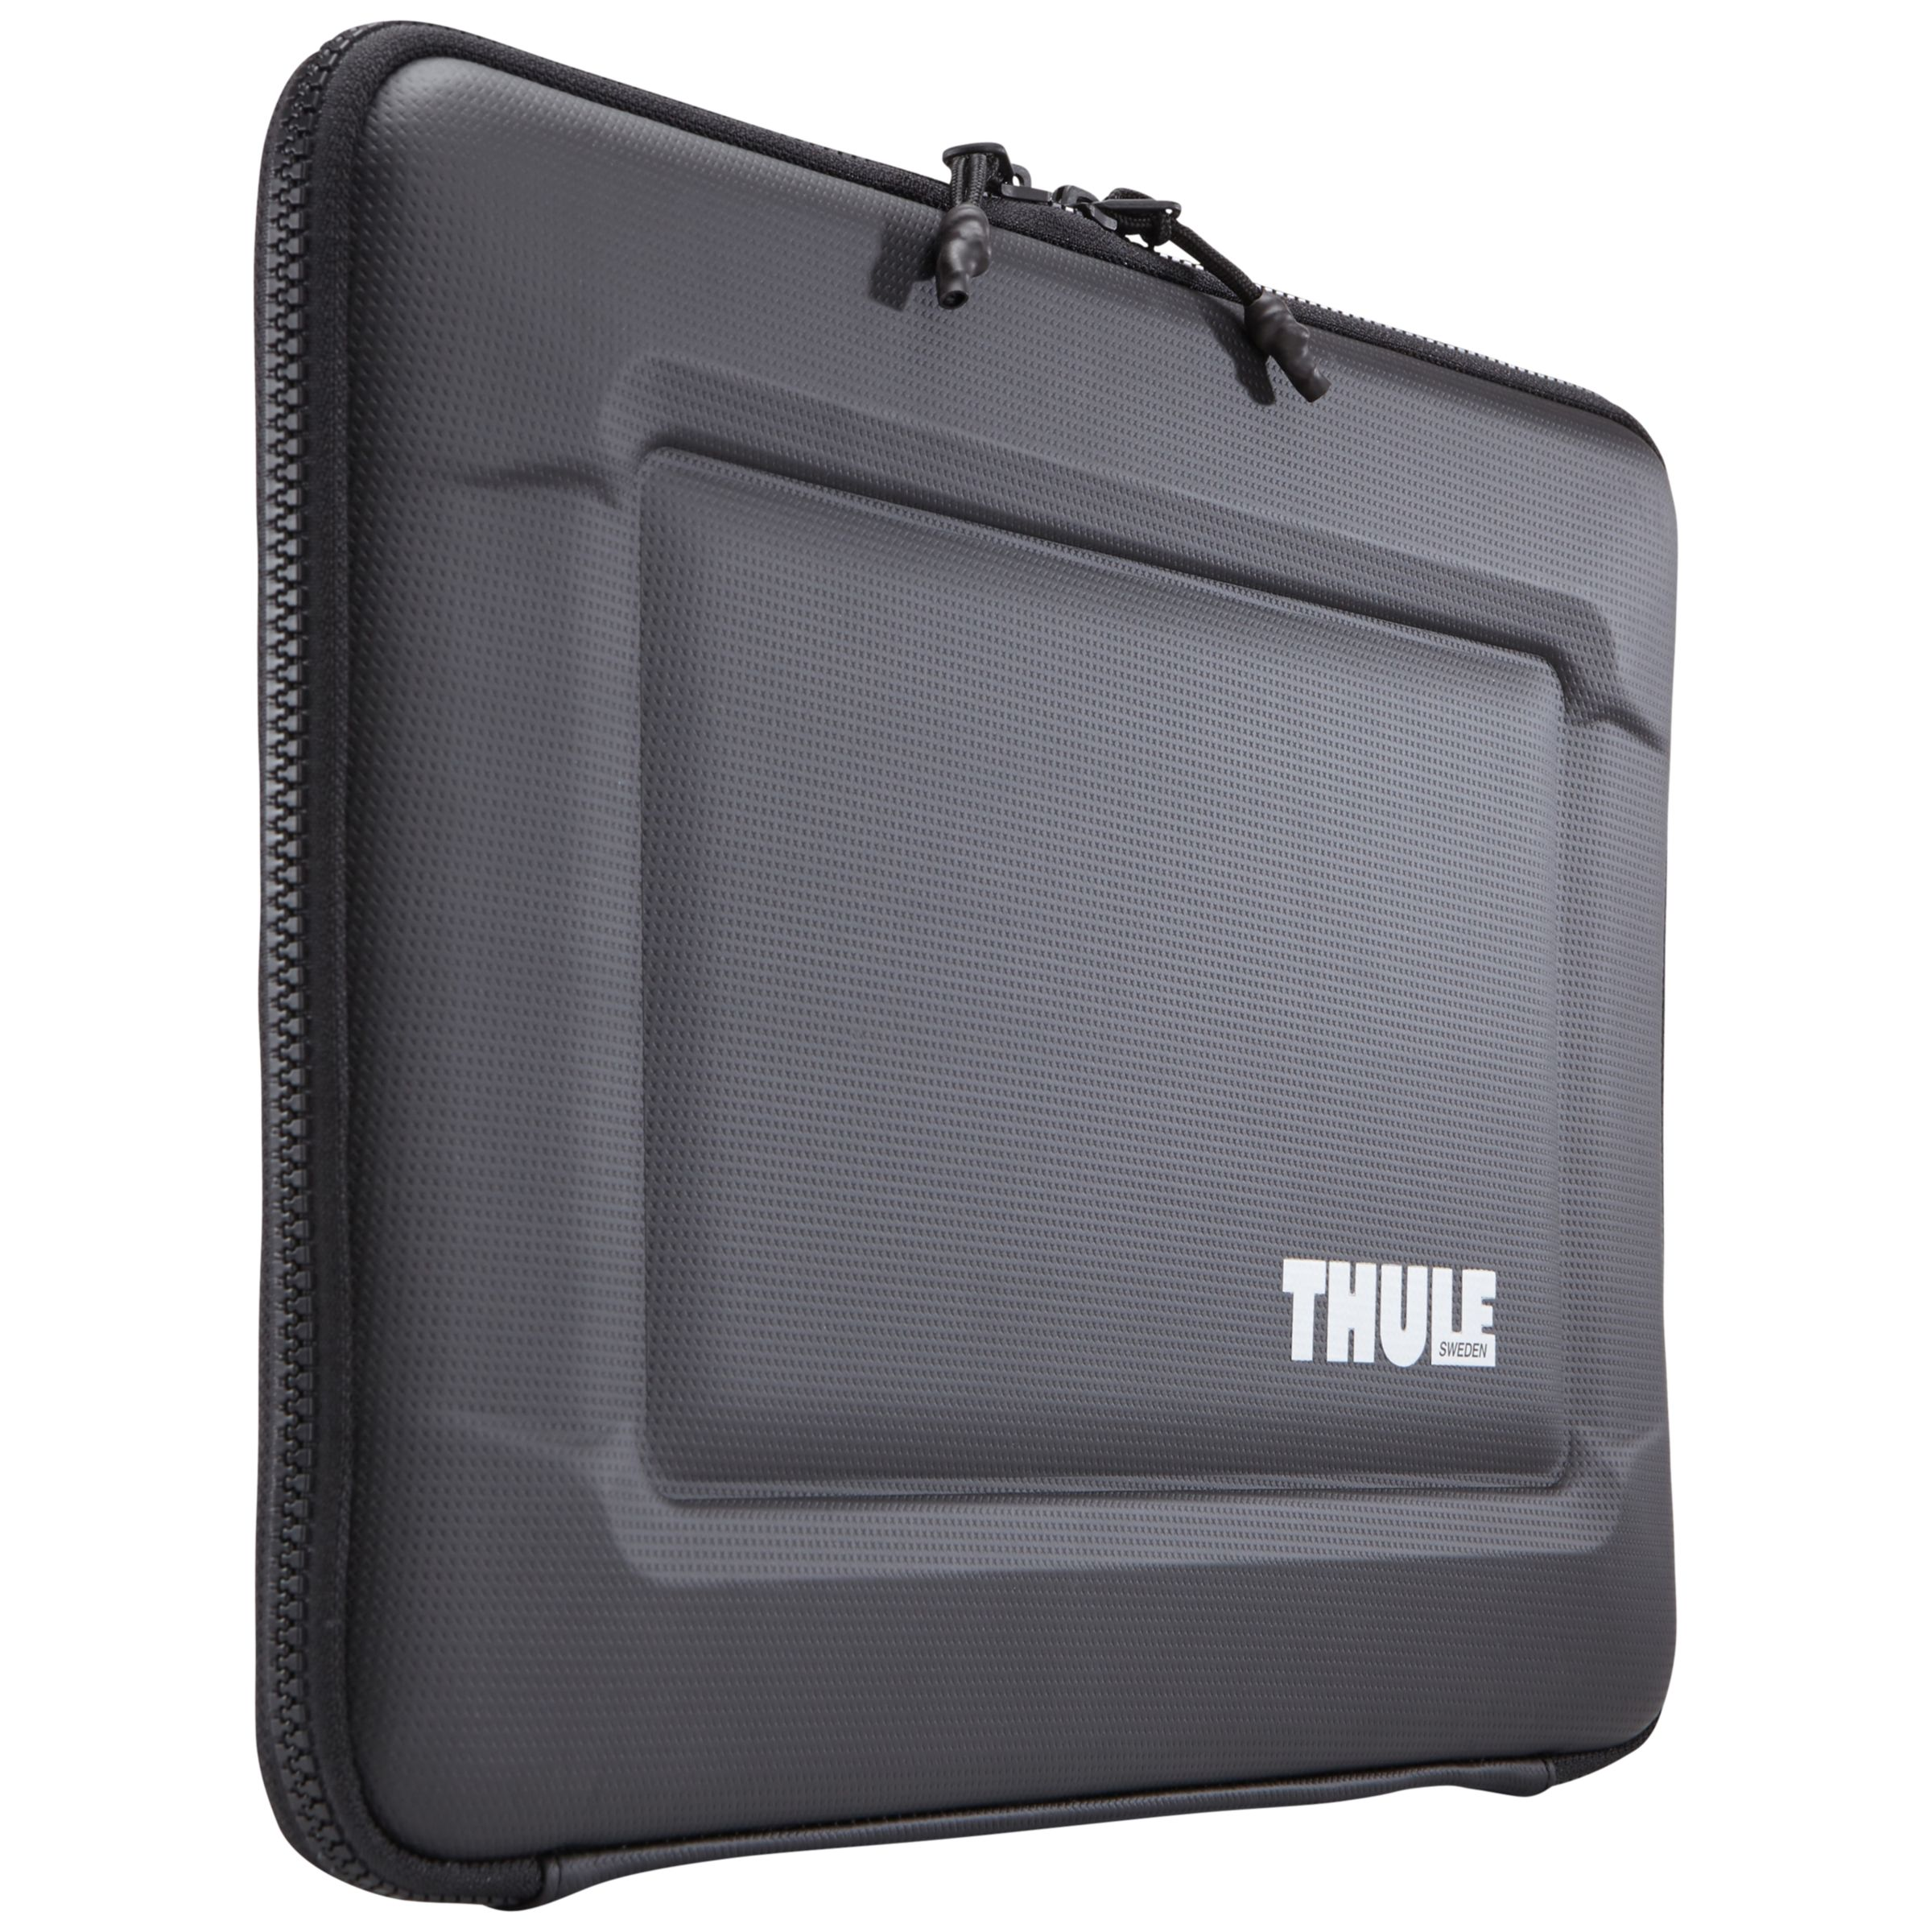 Thule Thule Gauntlet 3.0 15 MacBook Sleeve, Black